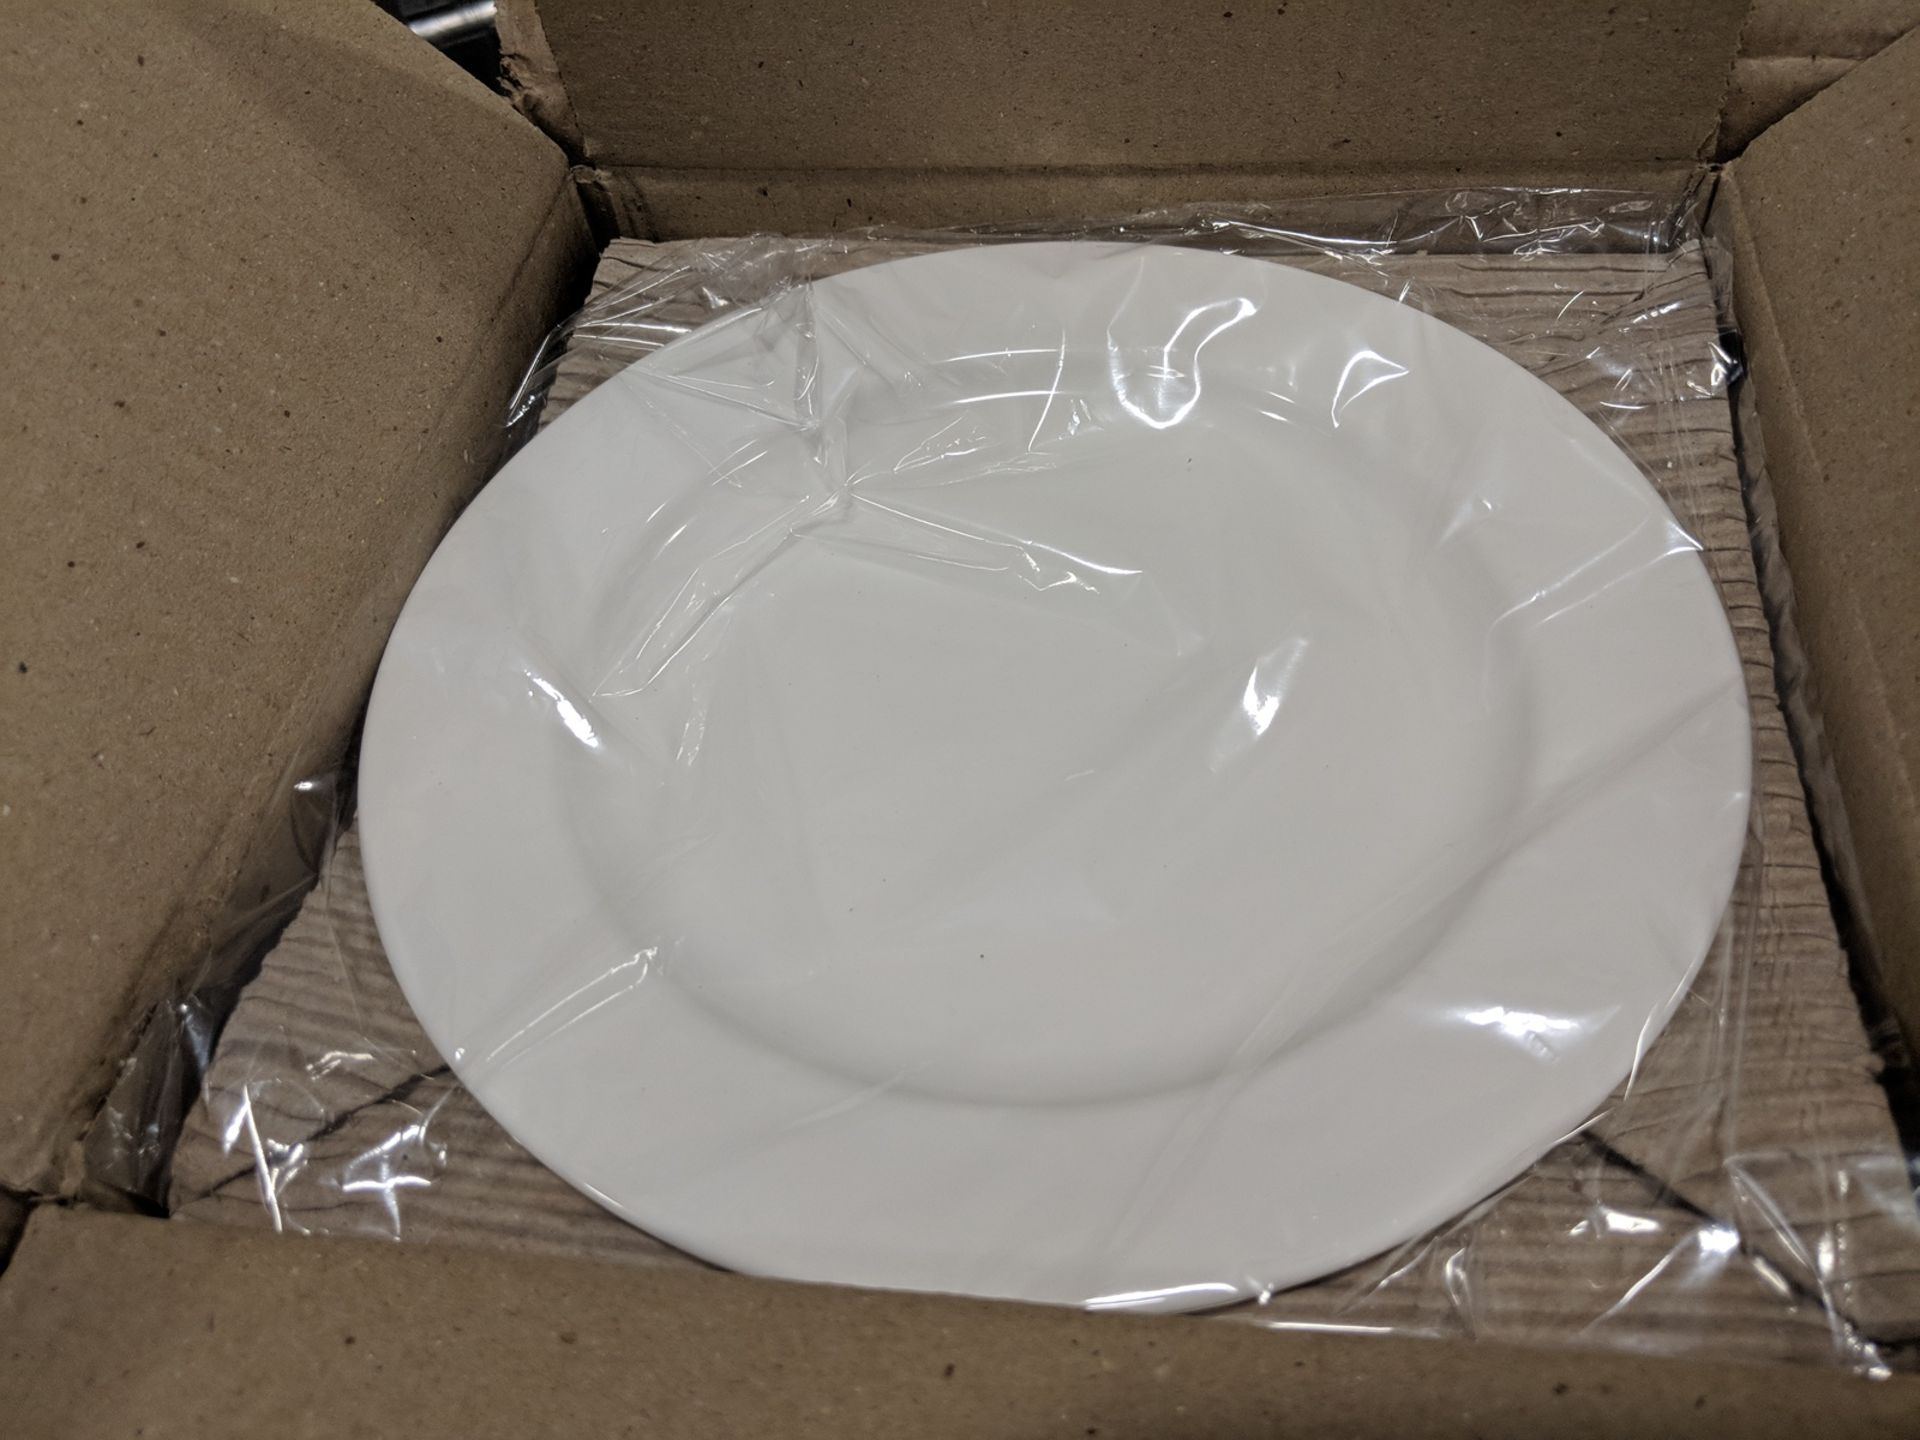 "Lot 27 - 8-1/4"" Infinity Salad/Dessert Plates - Lot of 24 (1 Case), Arcoroc R1004"